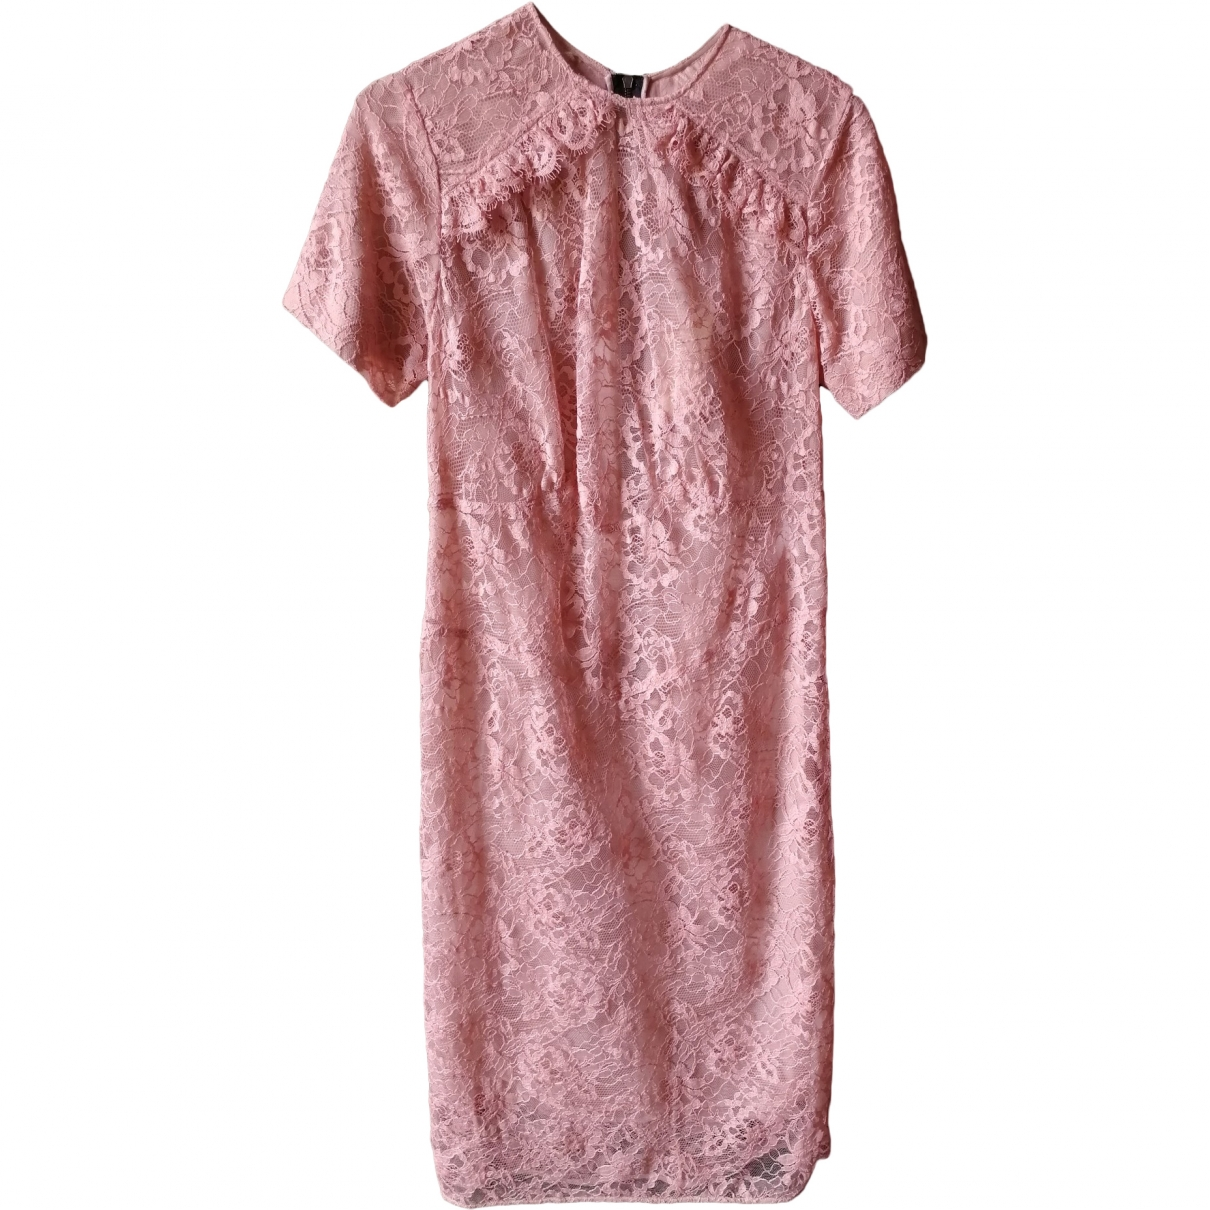 Burberry \N Pink Lace dress for Women 6 UK